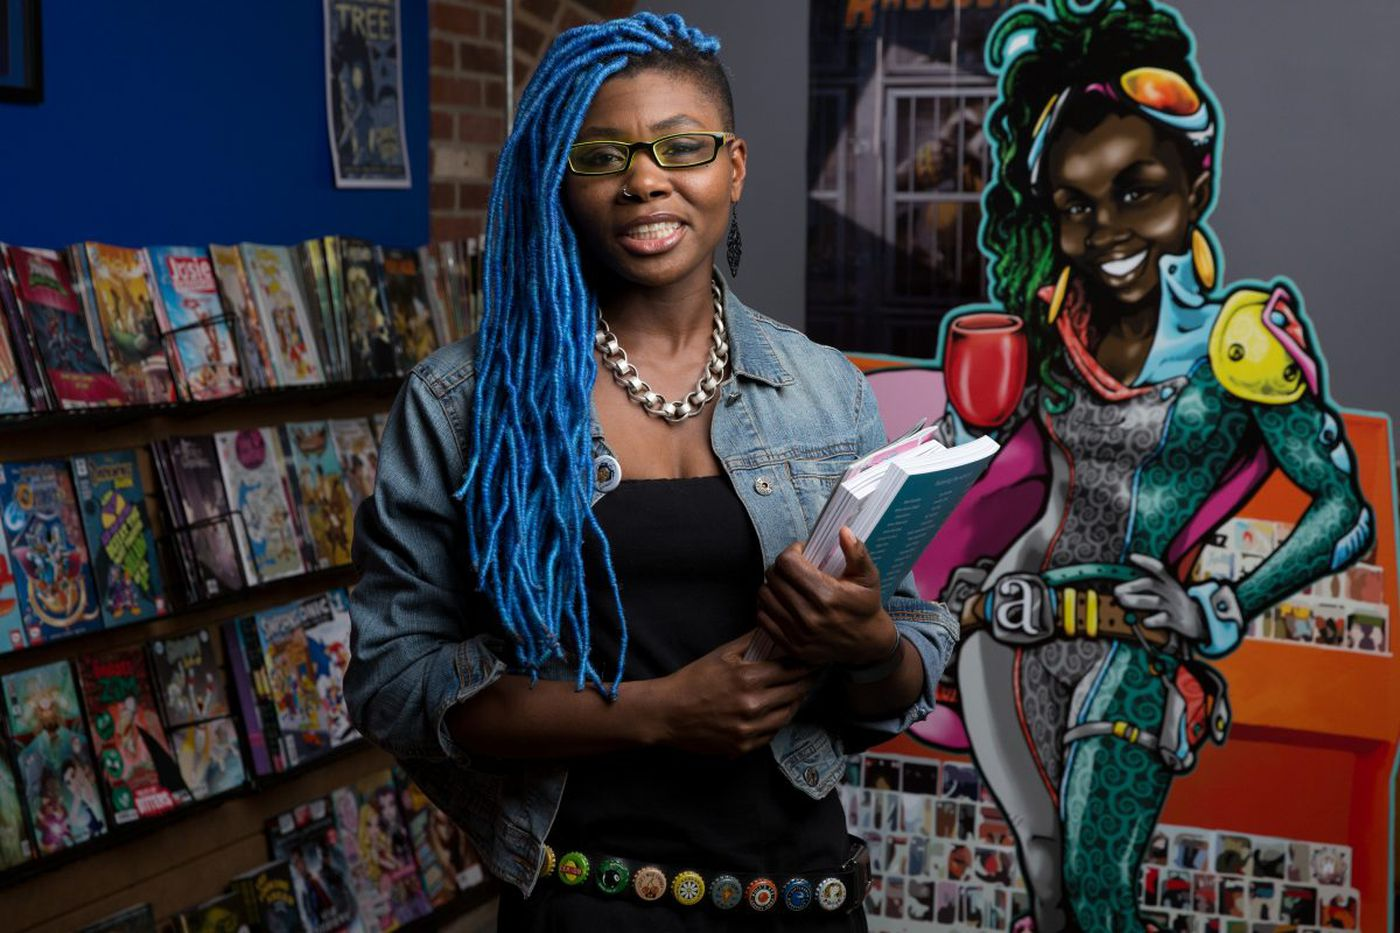 Philly comic shop awarded $50,000 to open more doors